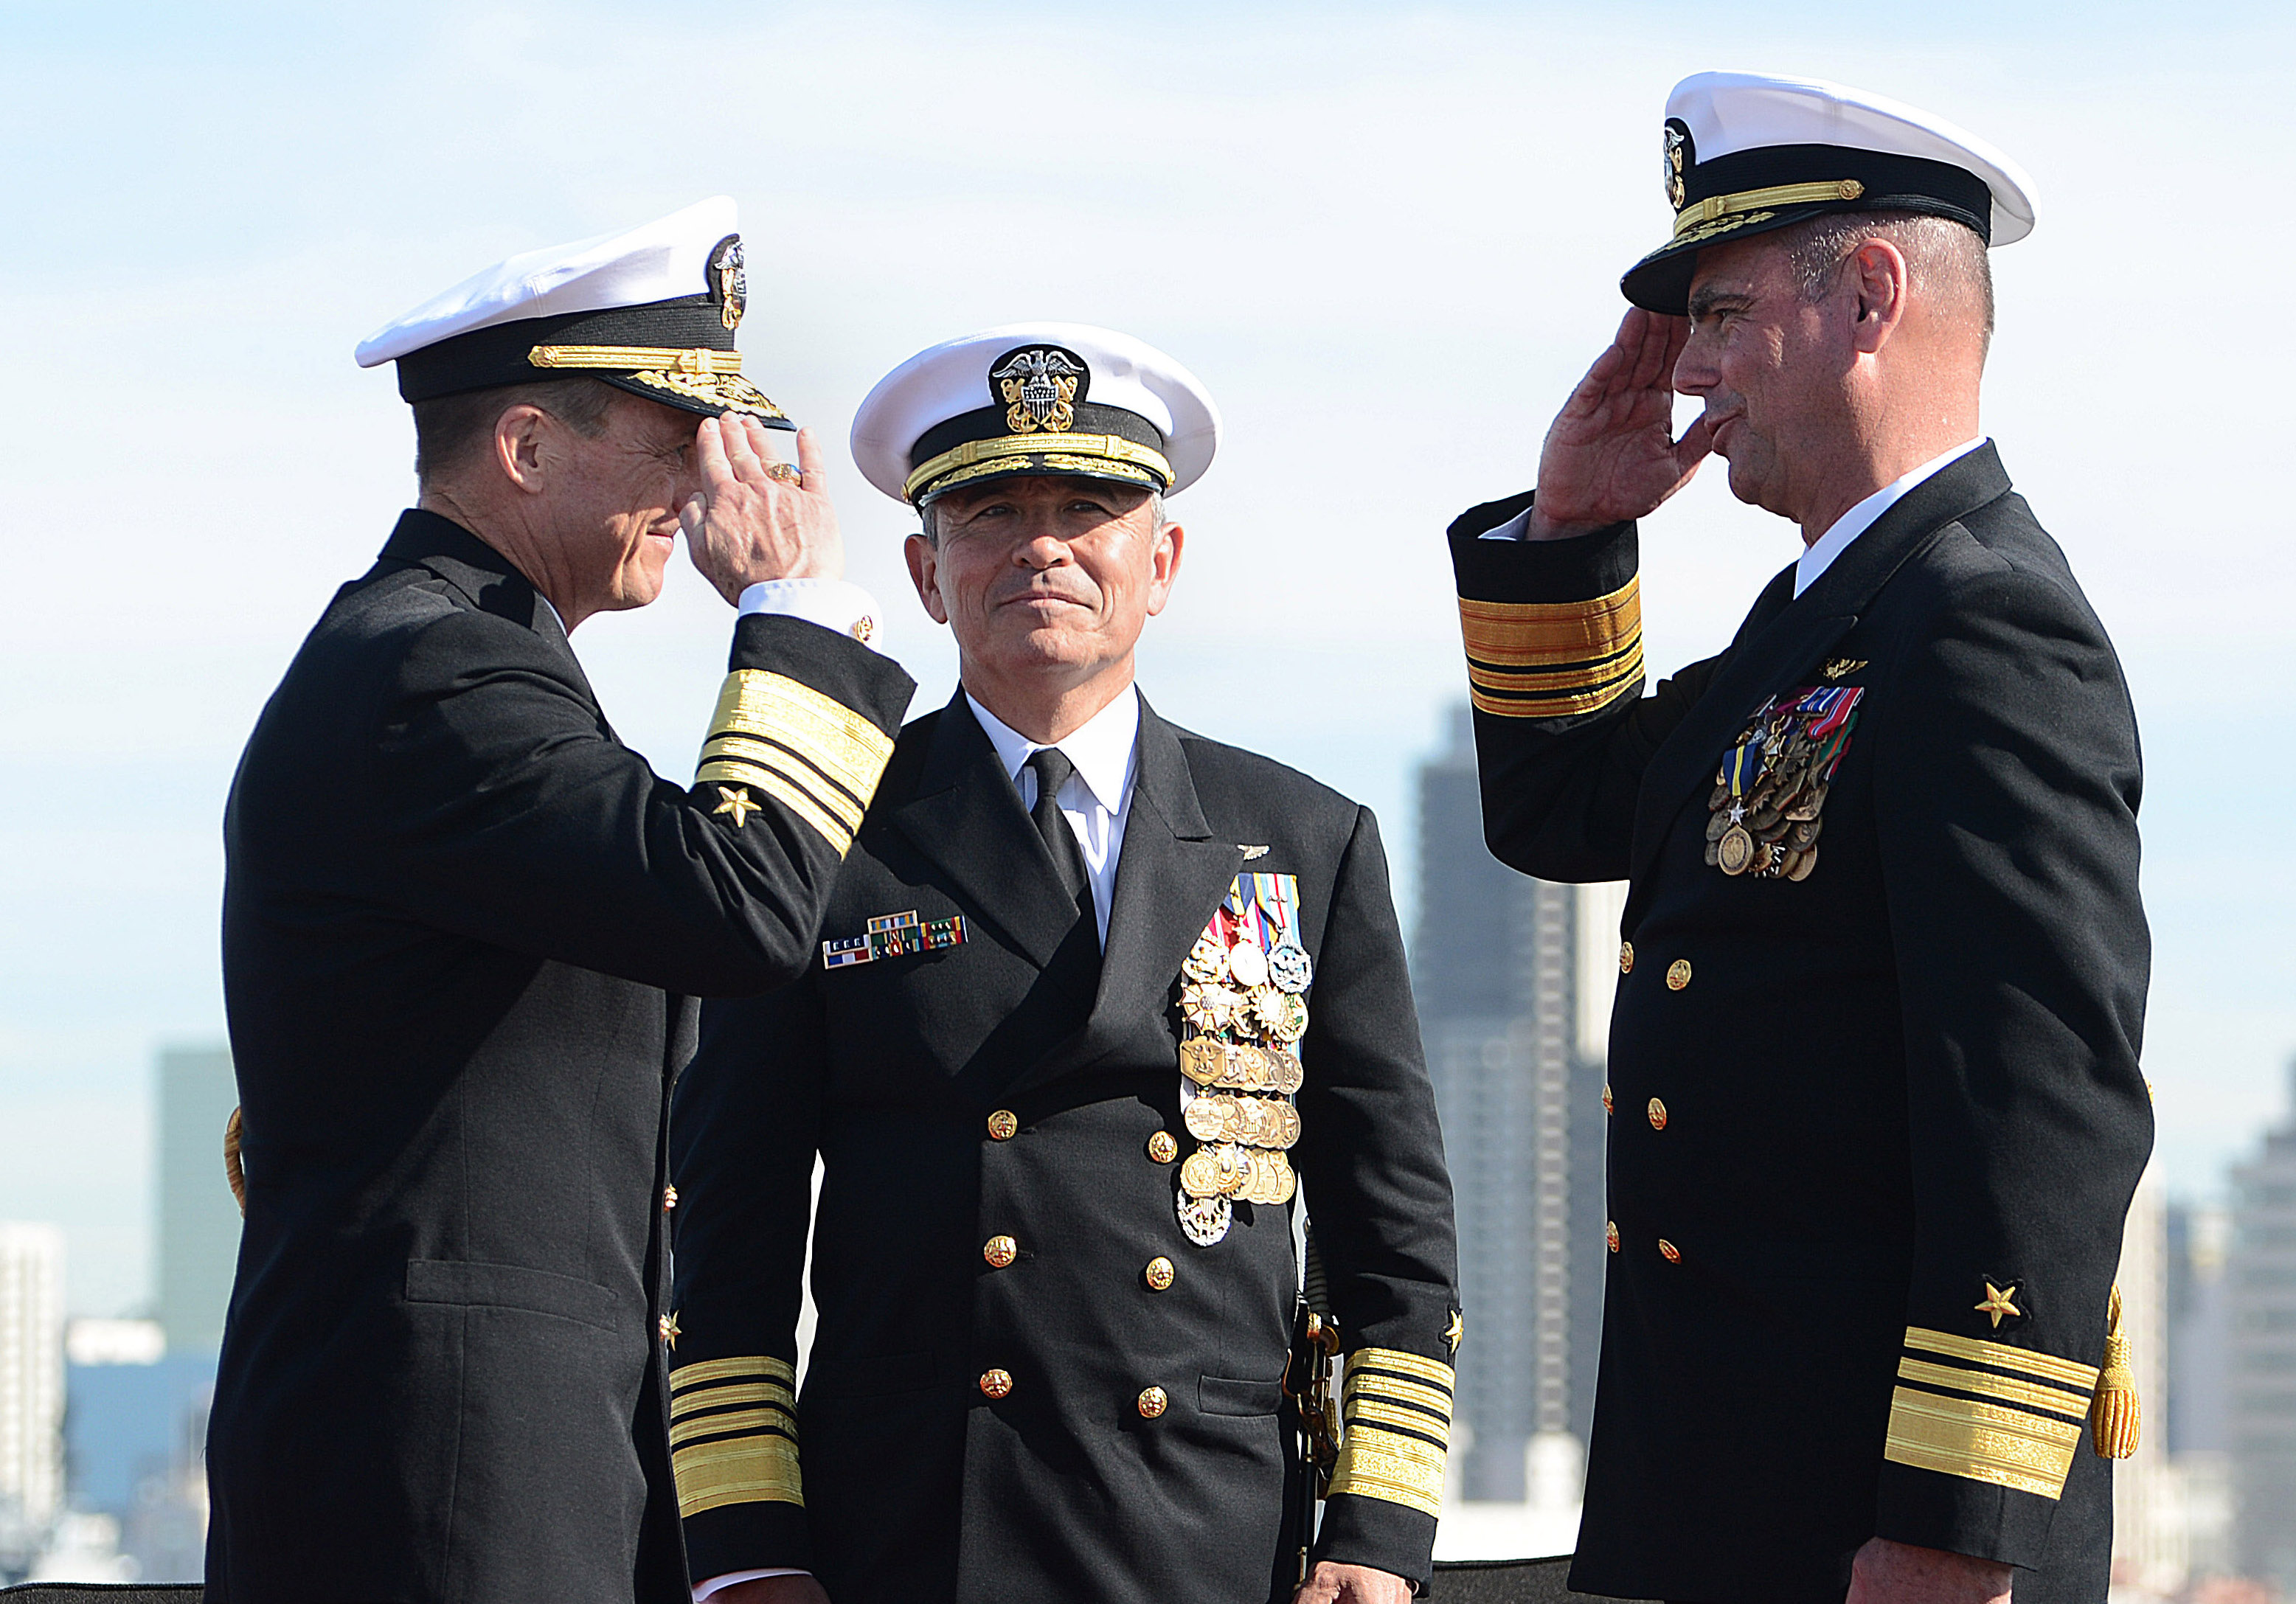 Commander Naval Air Forces conducts a change of command and retirement ceremony aboard USS John C. Stennis (CVN-74). During the ceremony, Vice Adm. Mike Shoemaker relieved Vice Adm. David H. Buss.